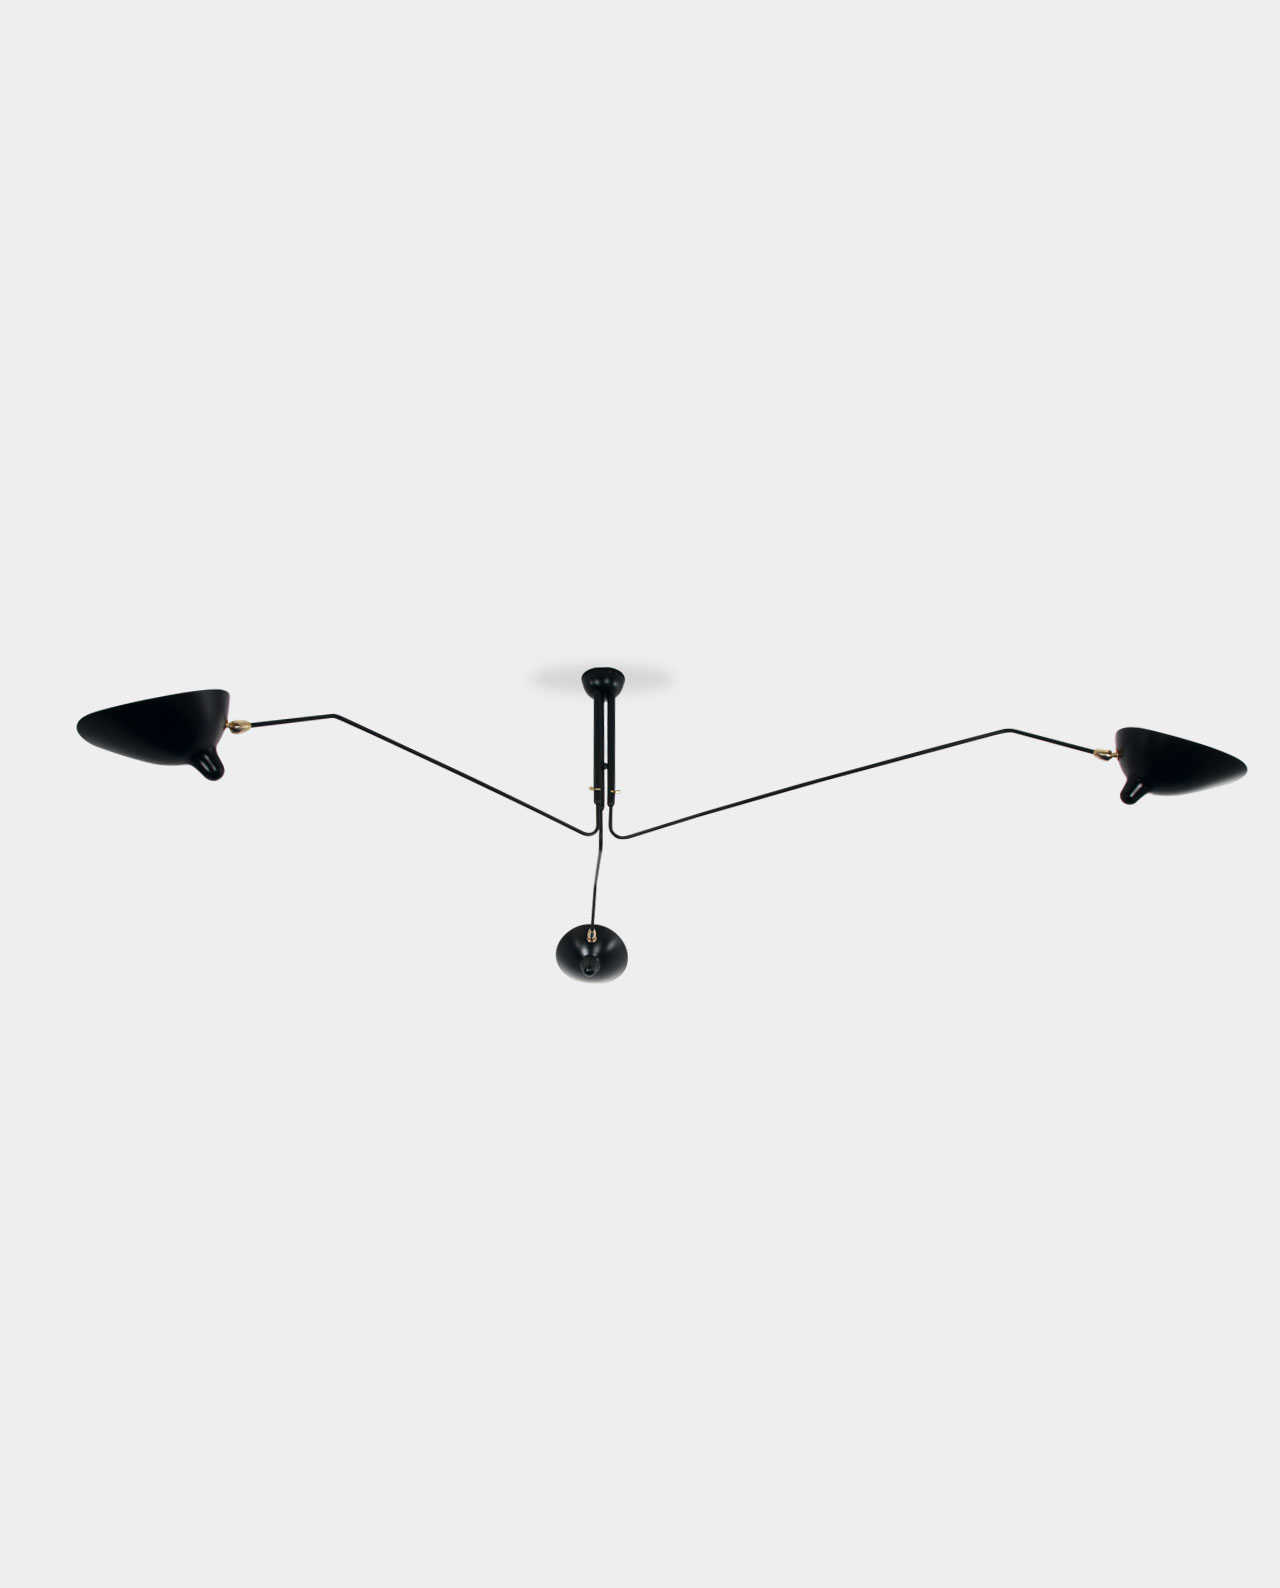 Ref p3b ceiling lamp 3 rotating arms serge mouille 1958